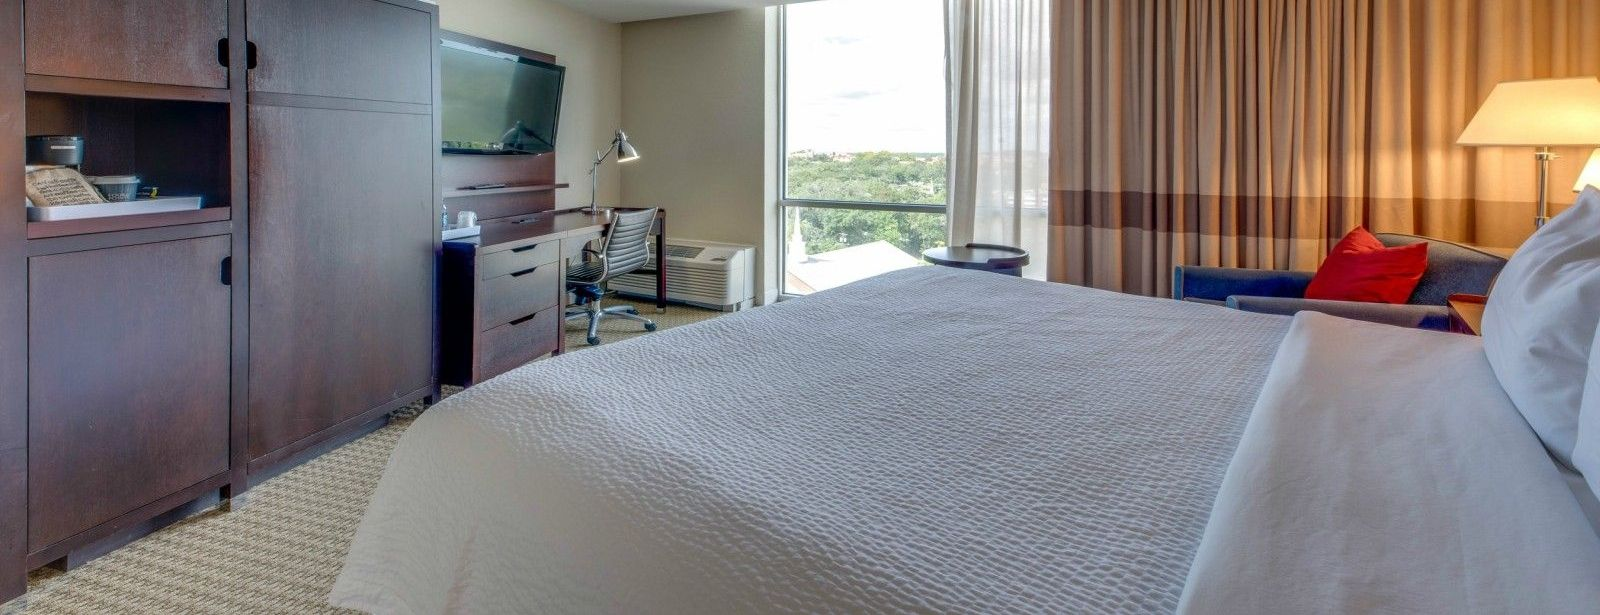 Tallahassee Accommodations - Accessible Guest Room